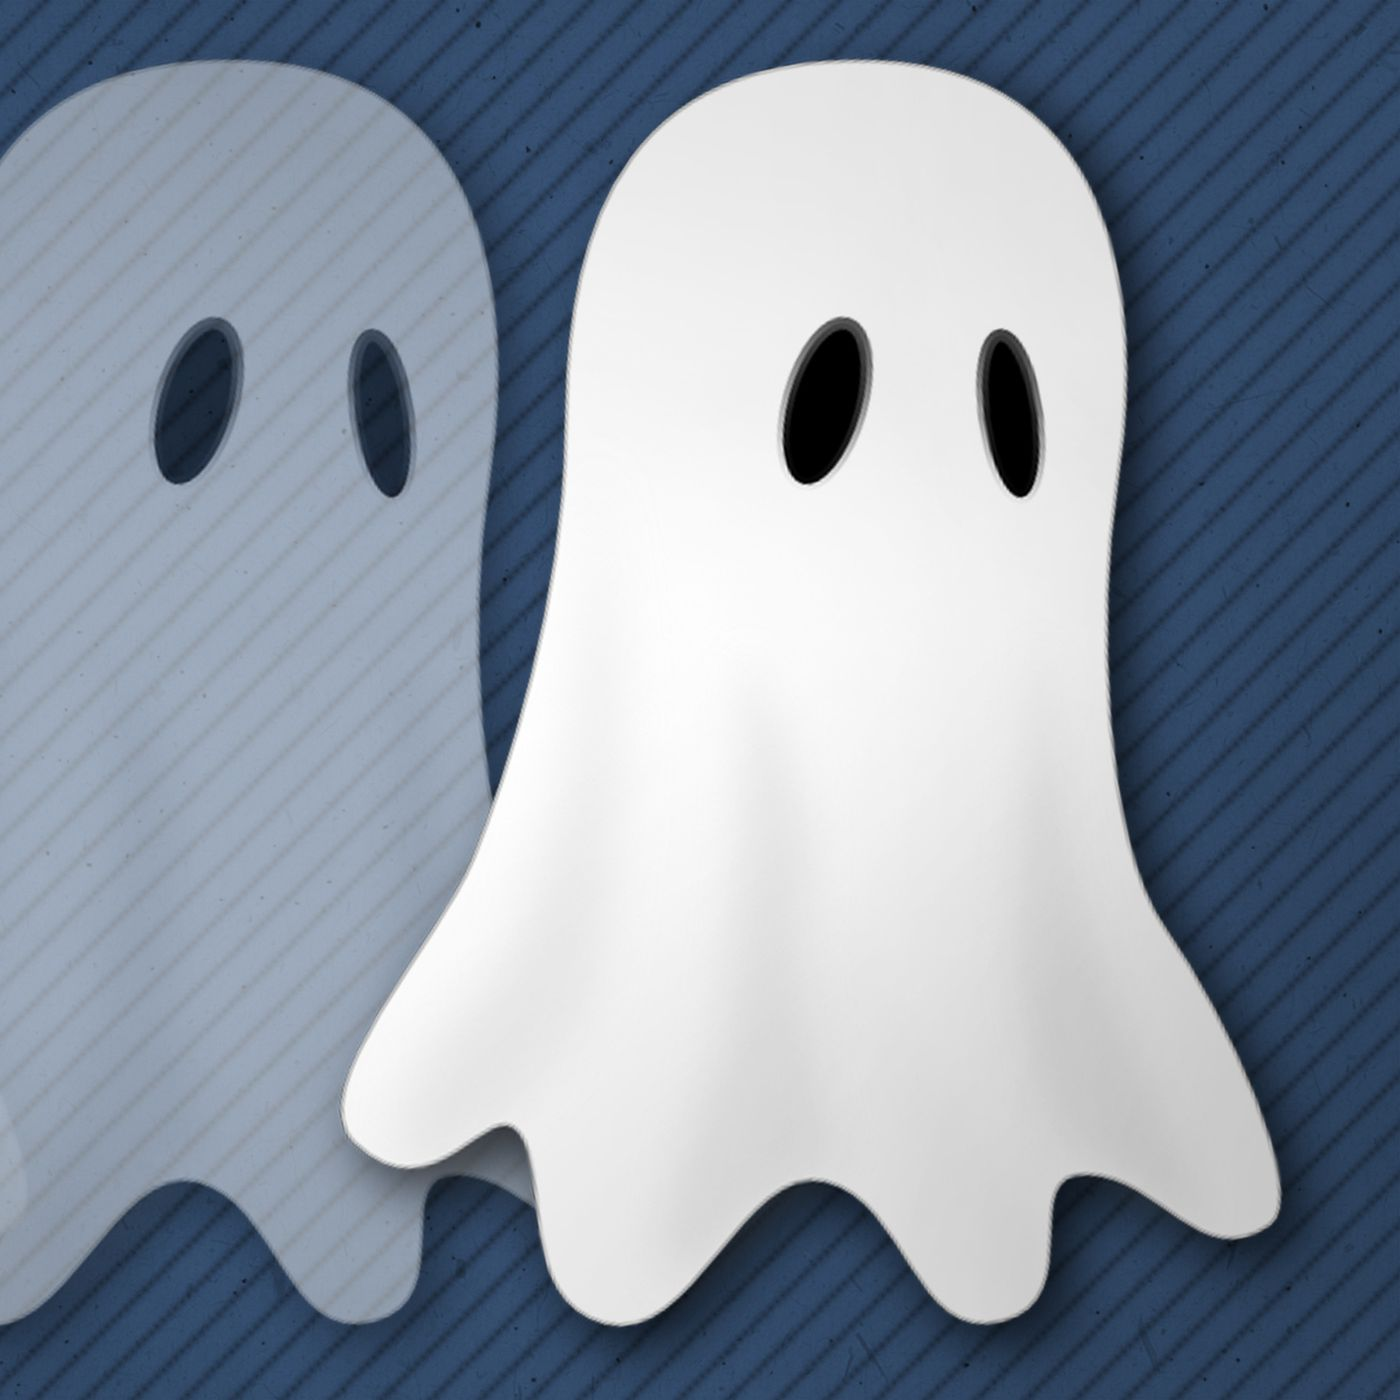 why people think they see ghosts vox